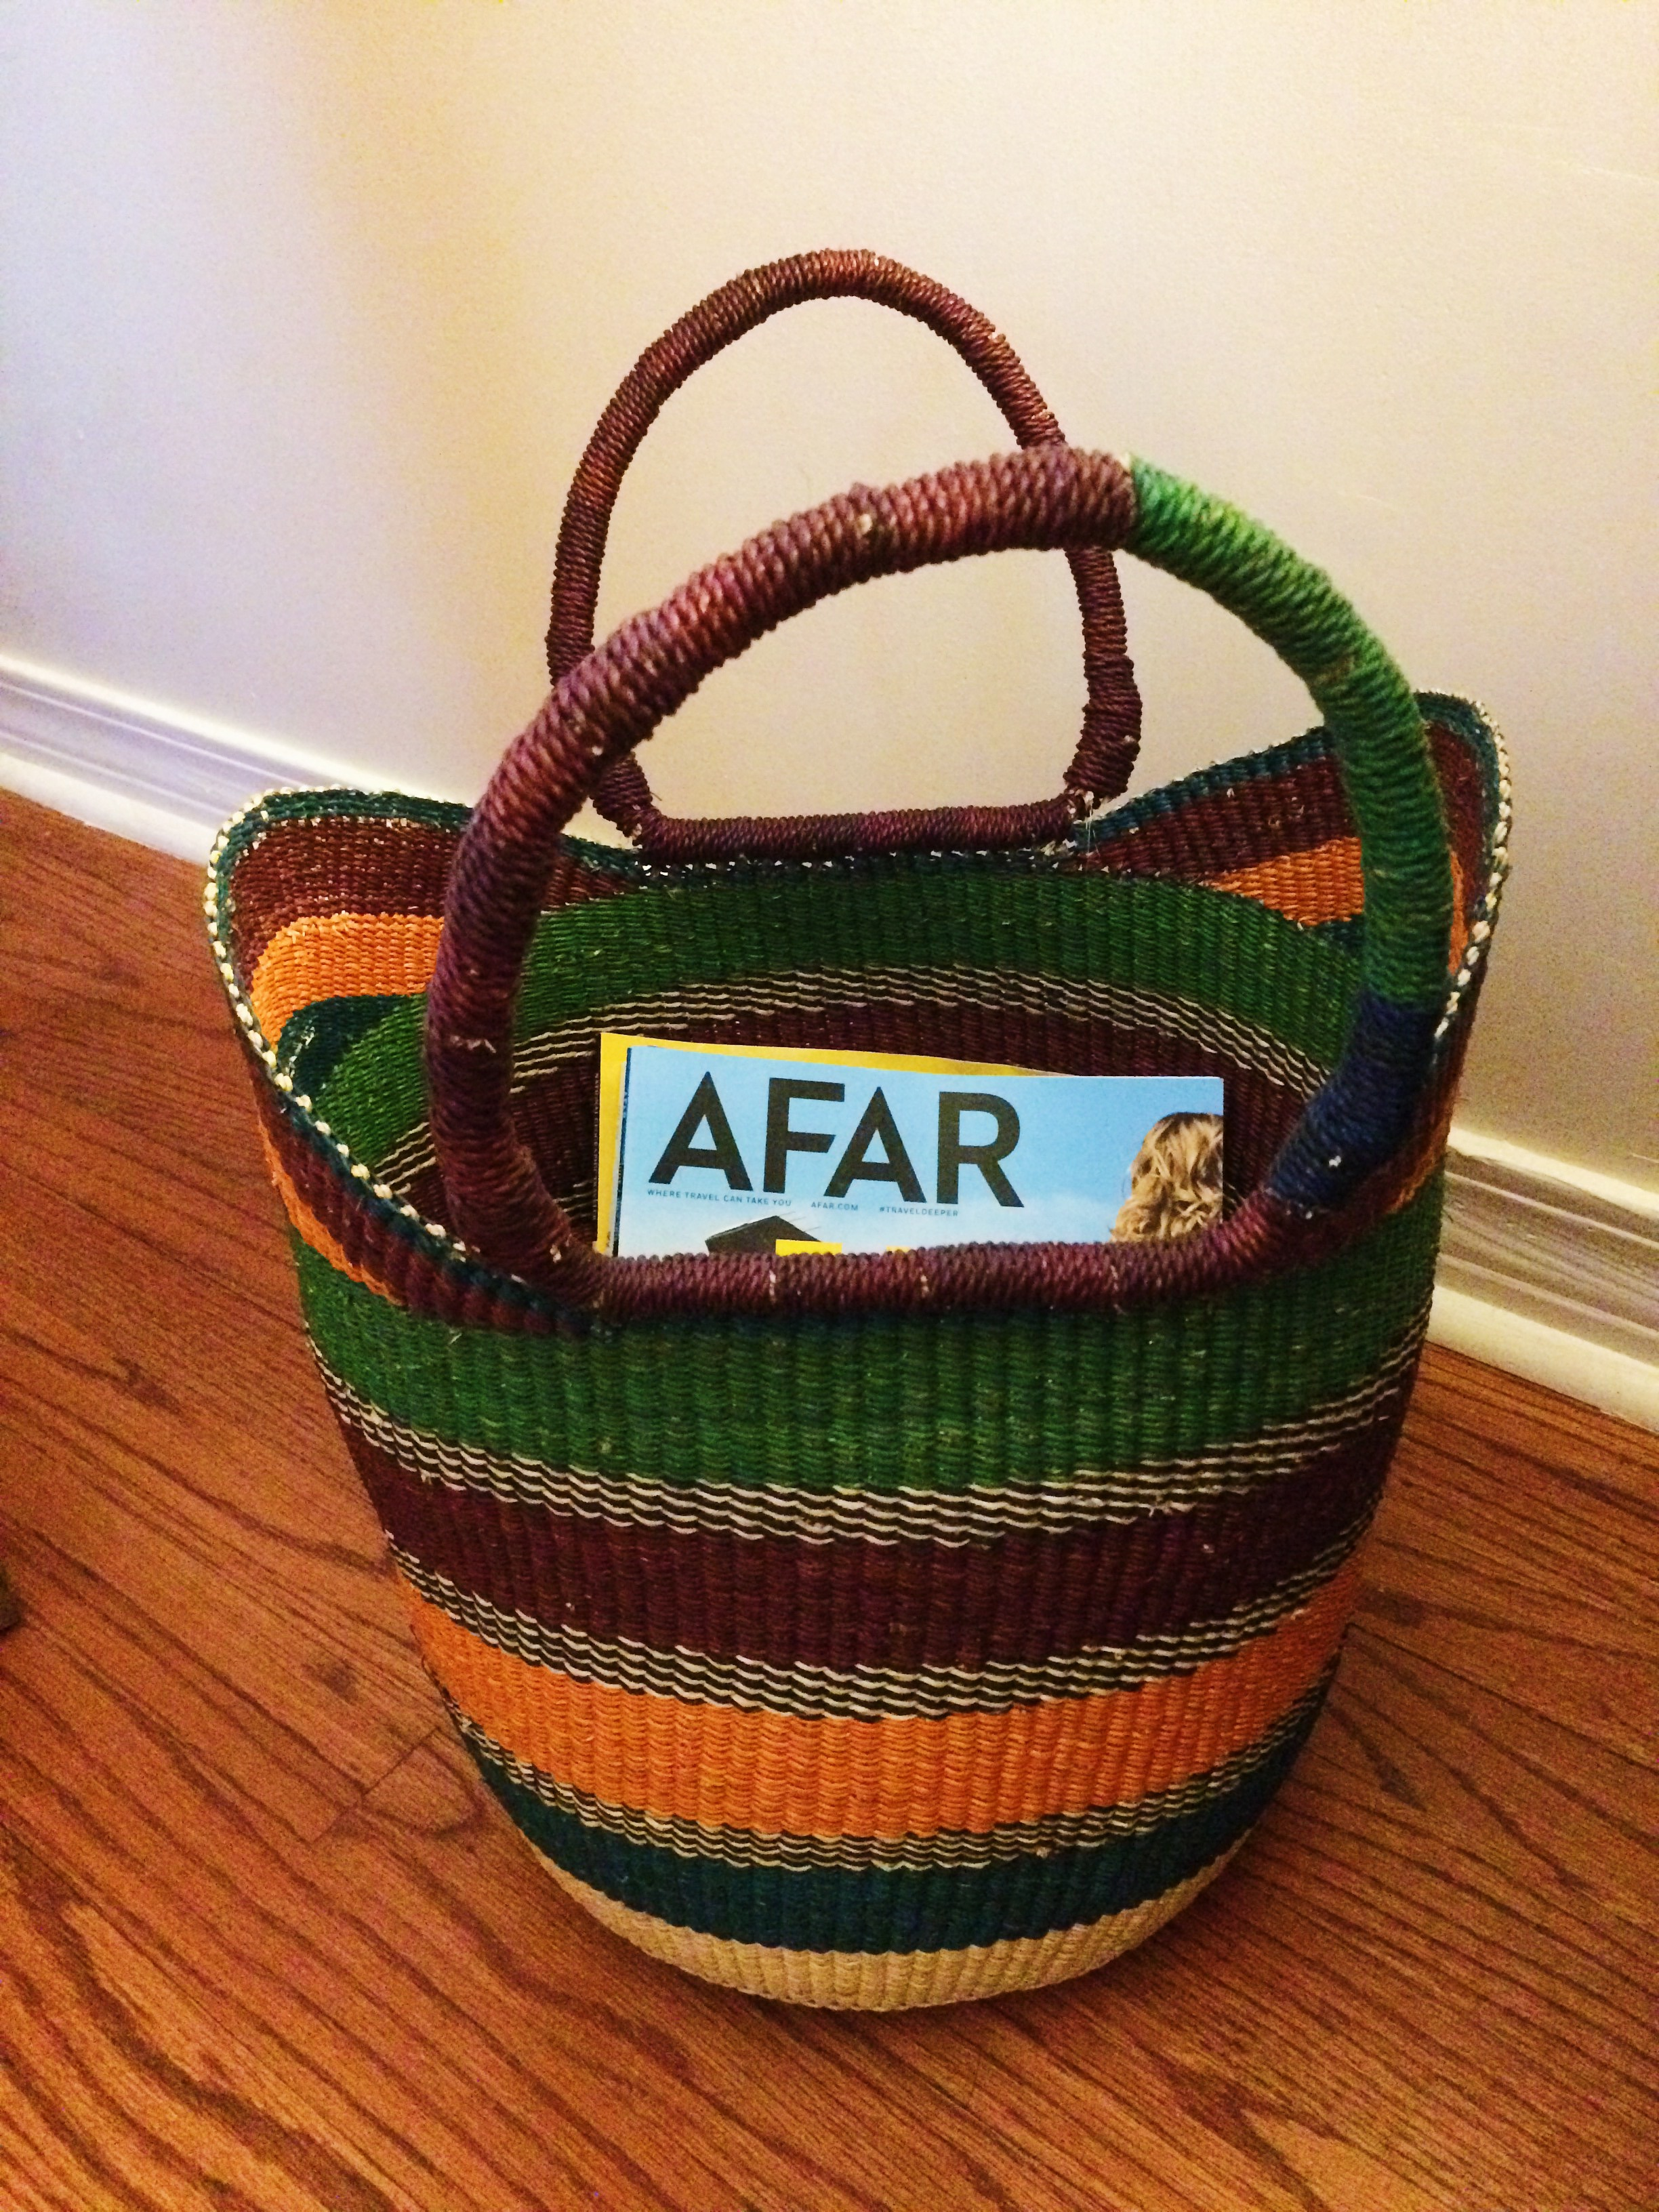 Home Decor Idea  Bolga Basket from Ghana   A Friend Afar Home Decor Idea  Bolga Baskets  Bolga Basket  www afriendafar com